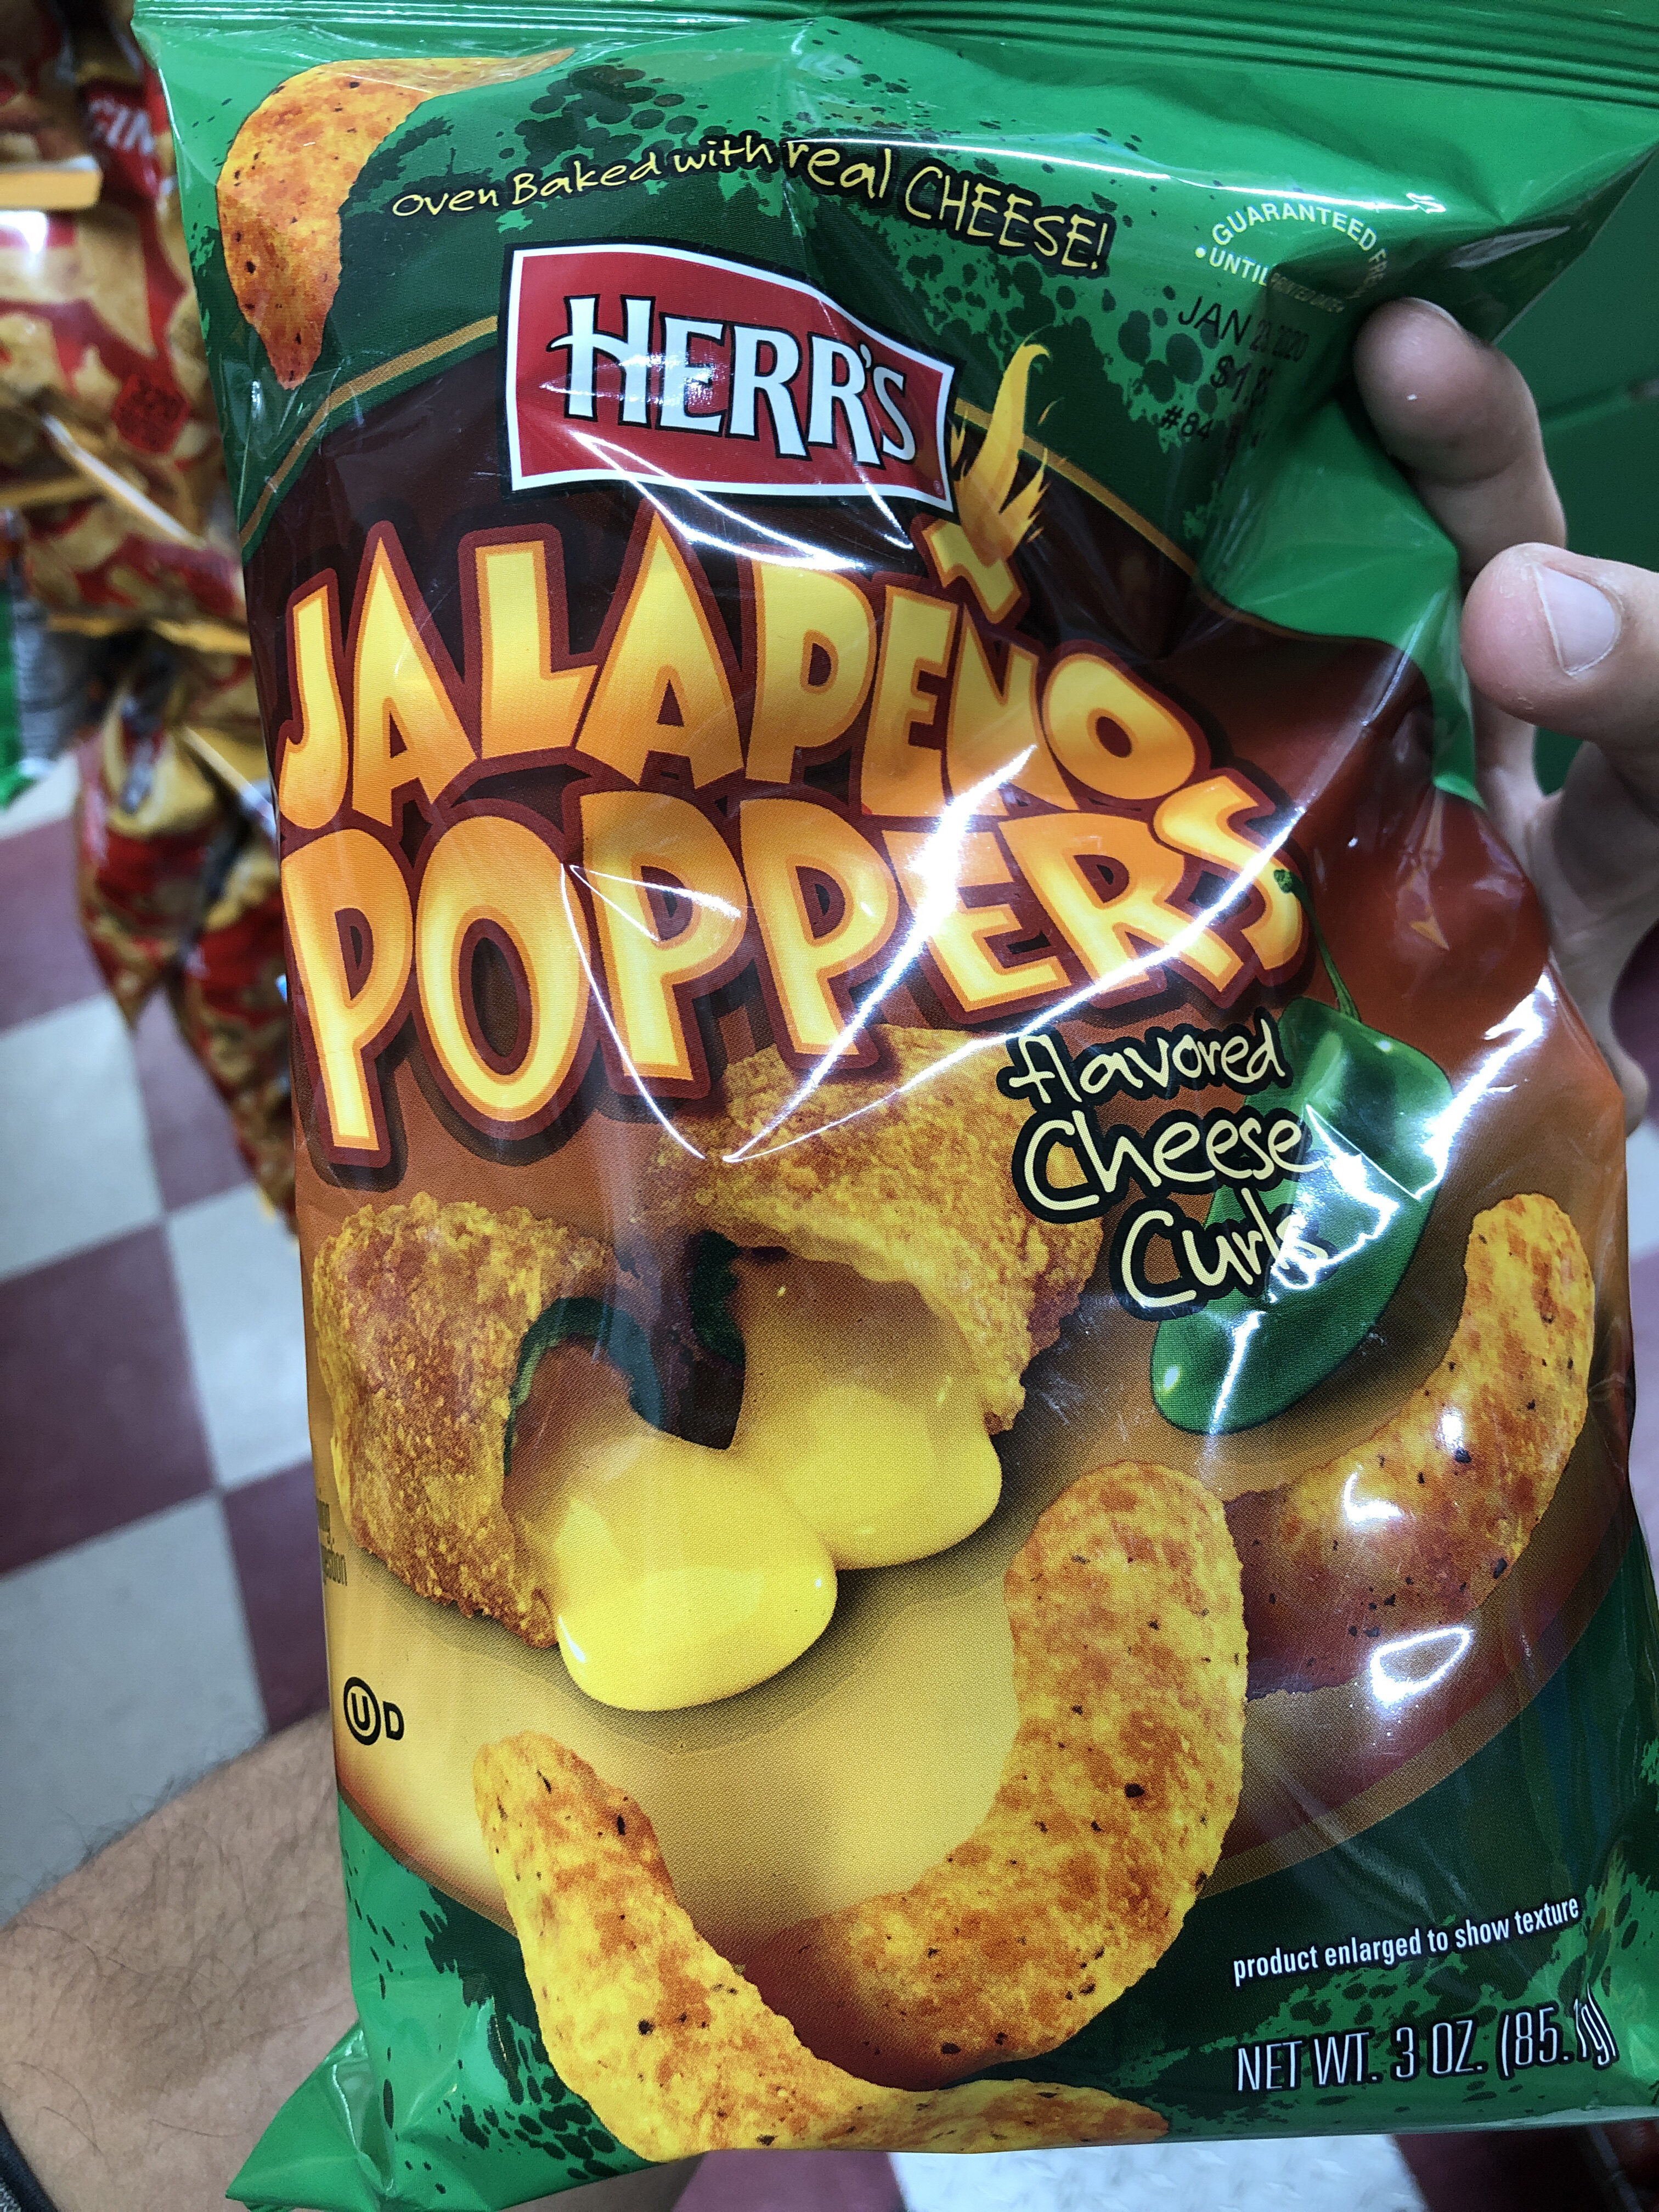 Jalapeno poppers flavored cheese curls, jalapeno poppers - Product - en